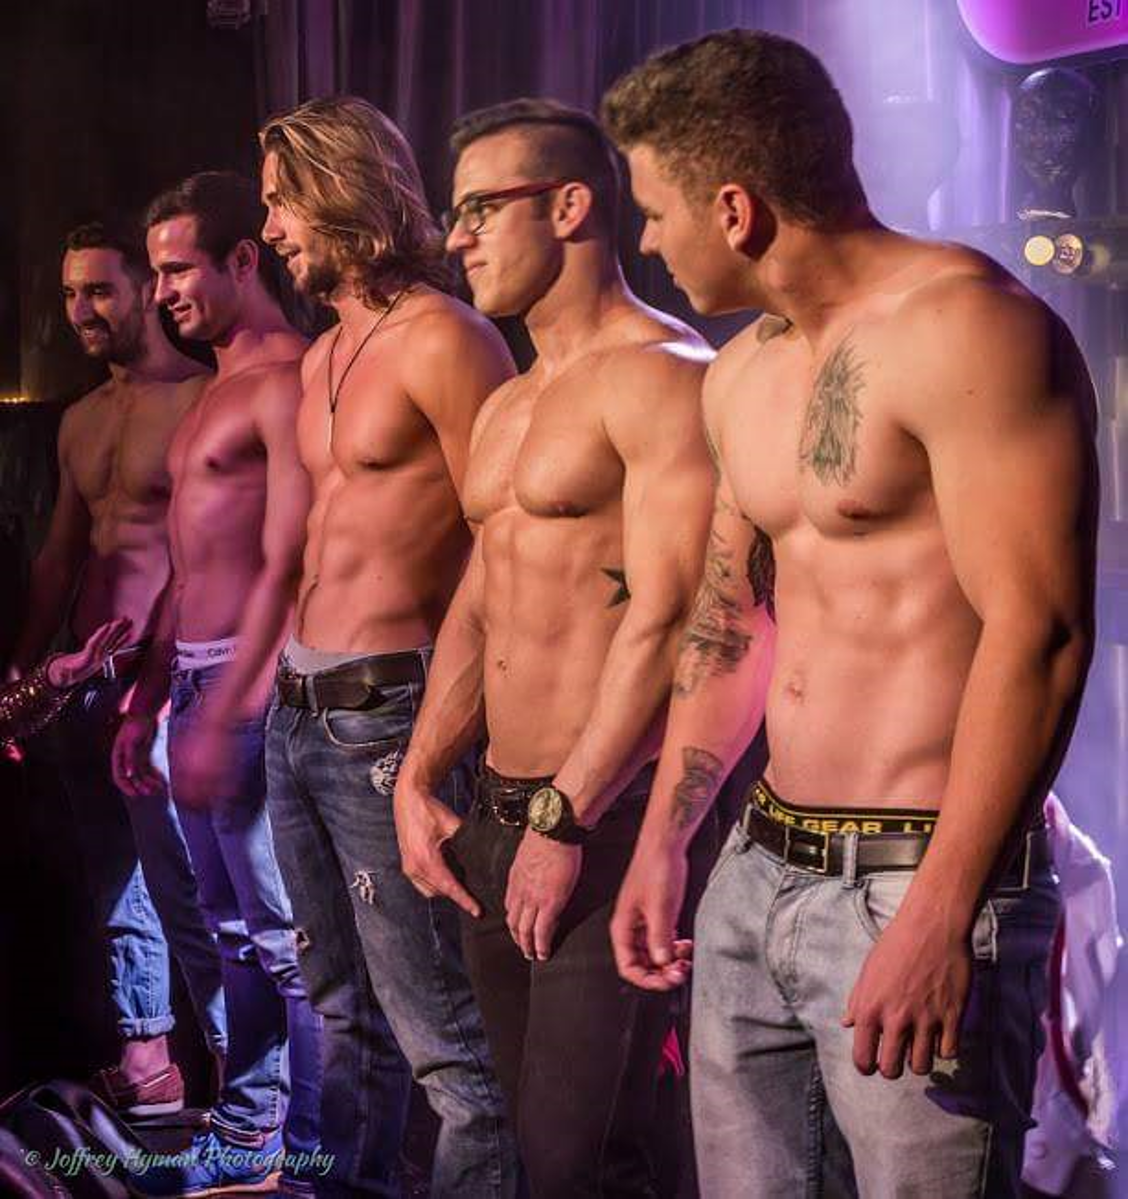 The Waiters at Beefcakes